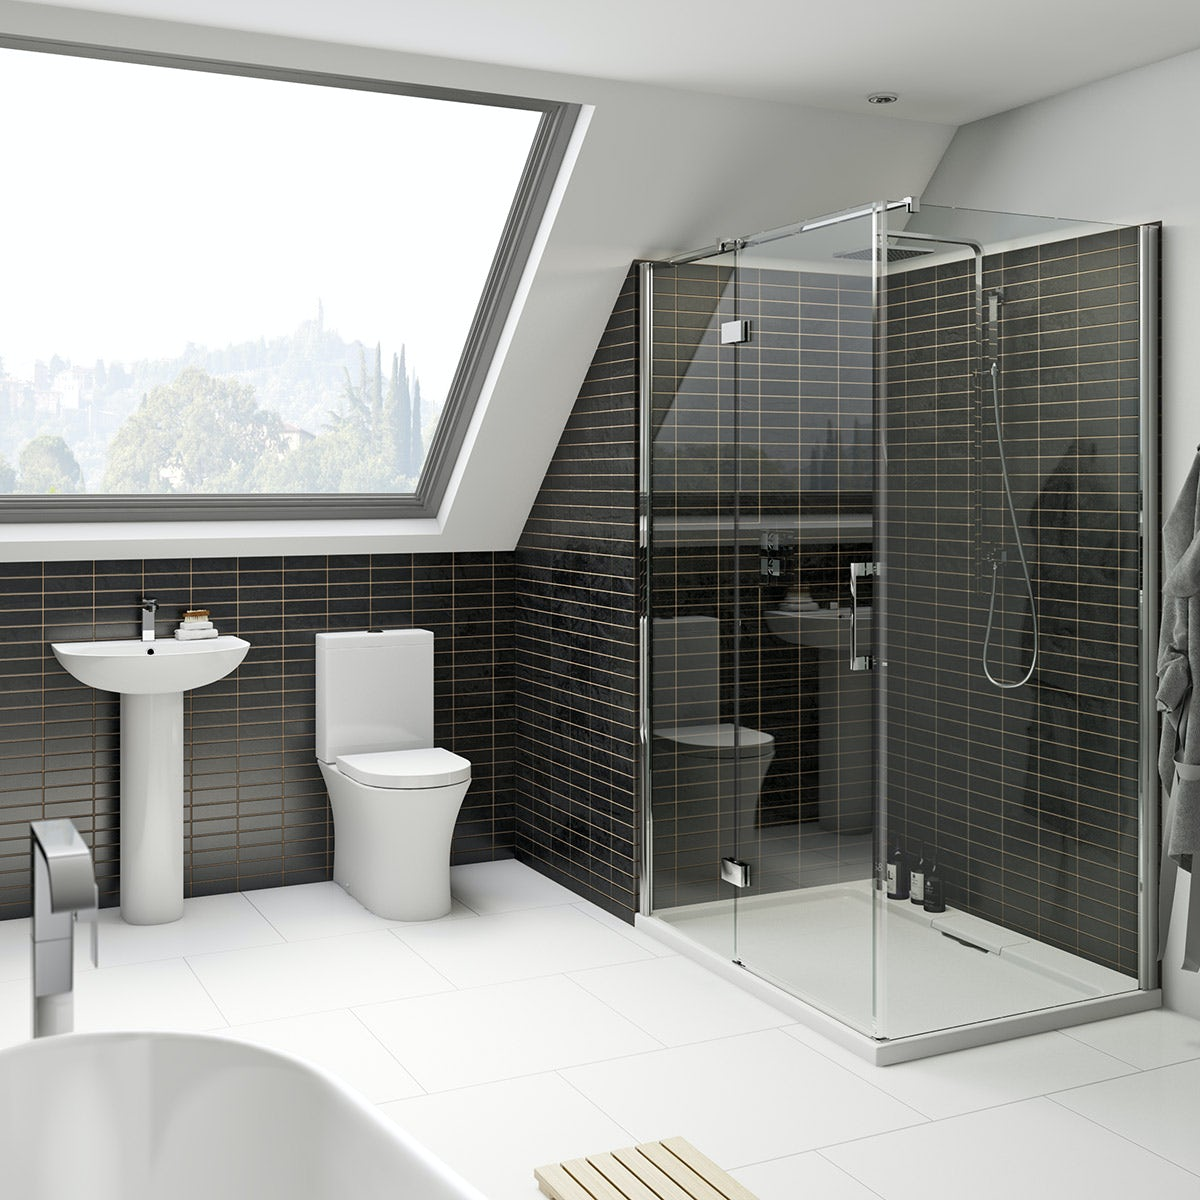 Mode Hardy ensuite suite with 8mm enclosure 1200 x 800